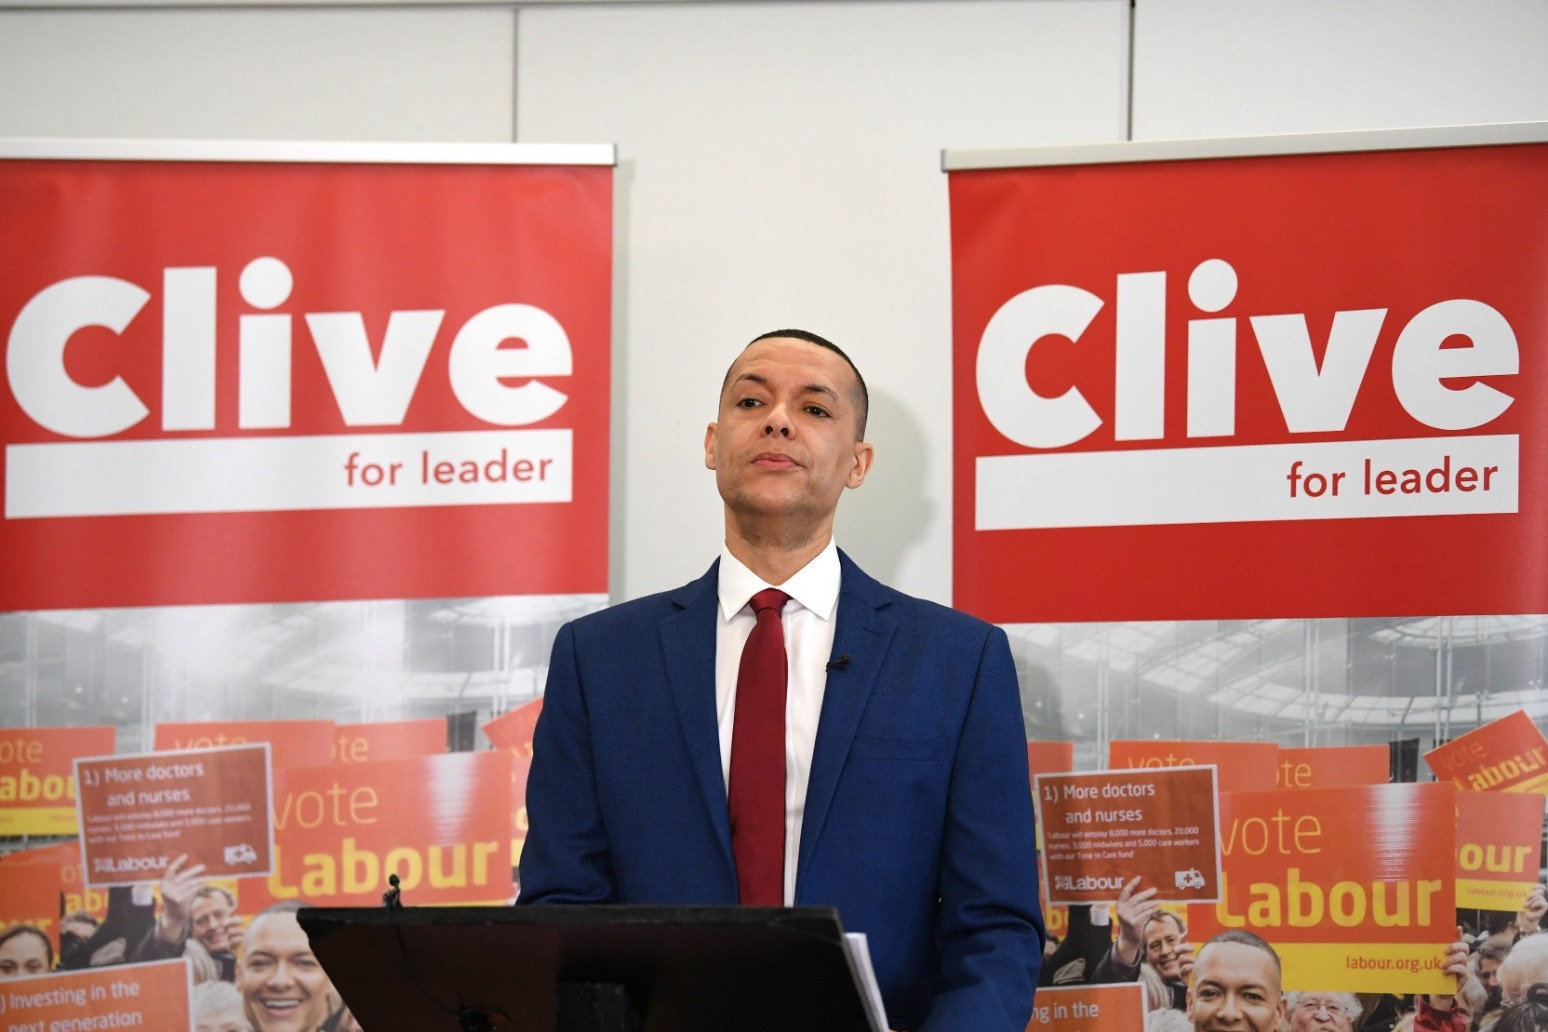 Lewis withdraws from Labour race